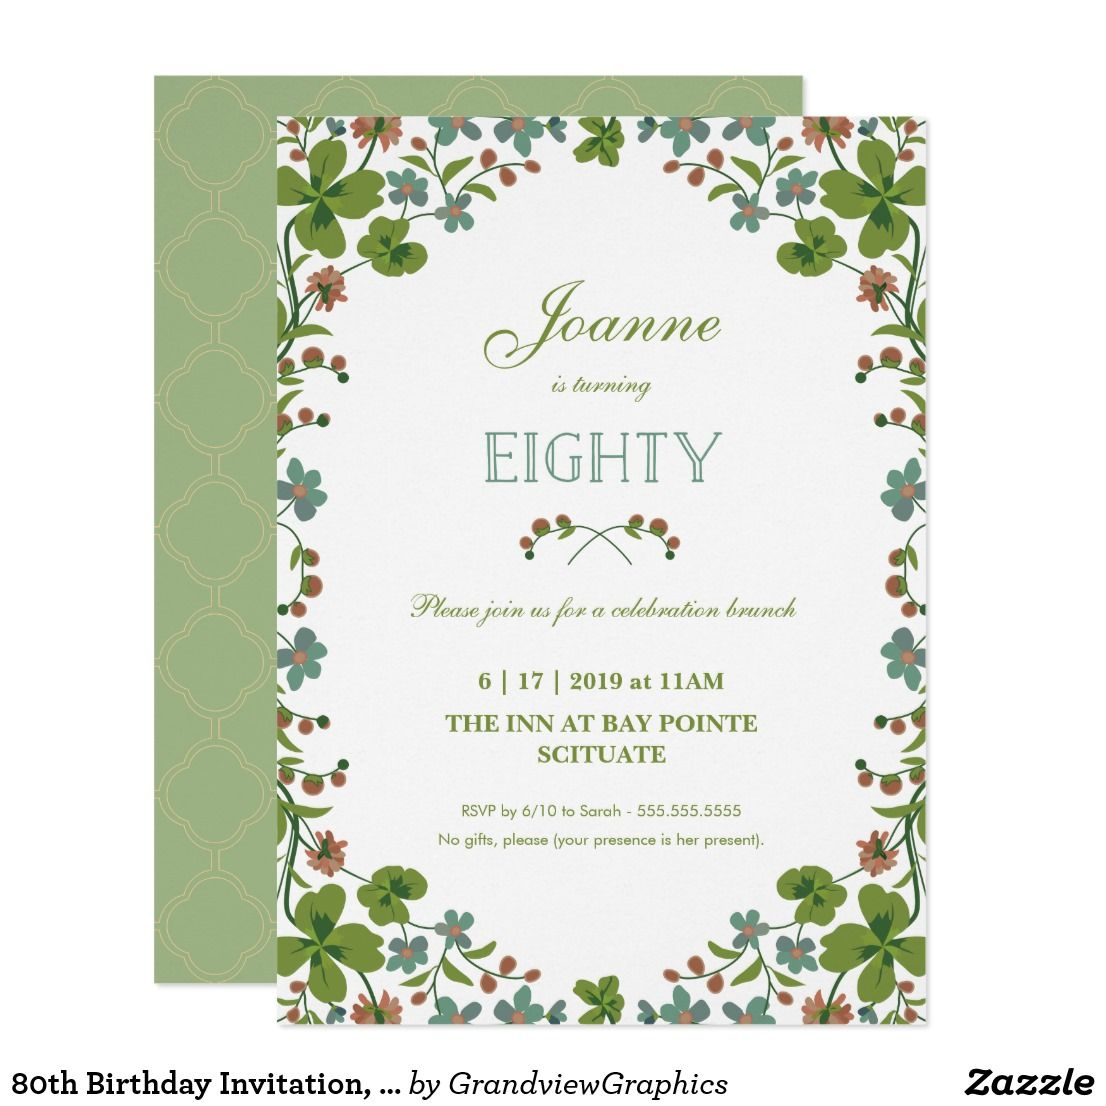 80th Birthday Invitation Vintage Floral Eightieth Card This Party Features A Style Border Of Green Pink And Blue Flowers